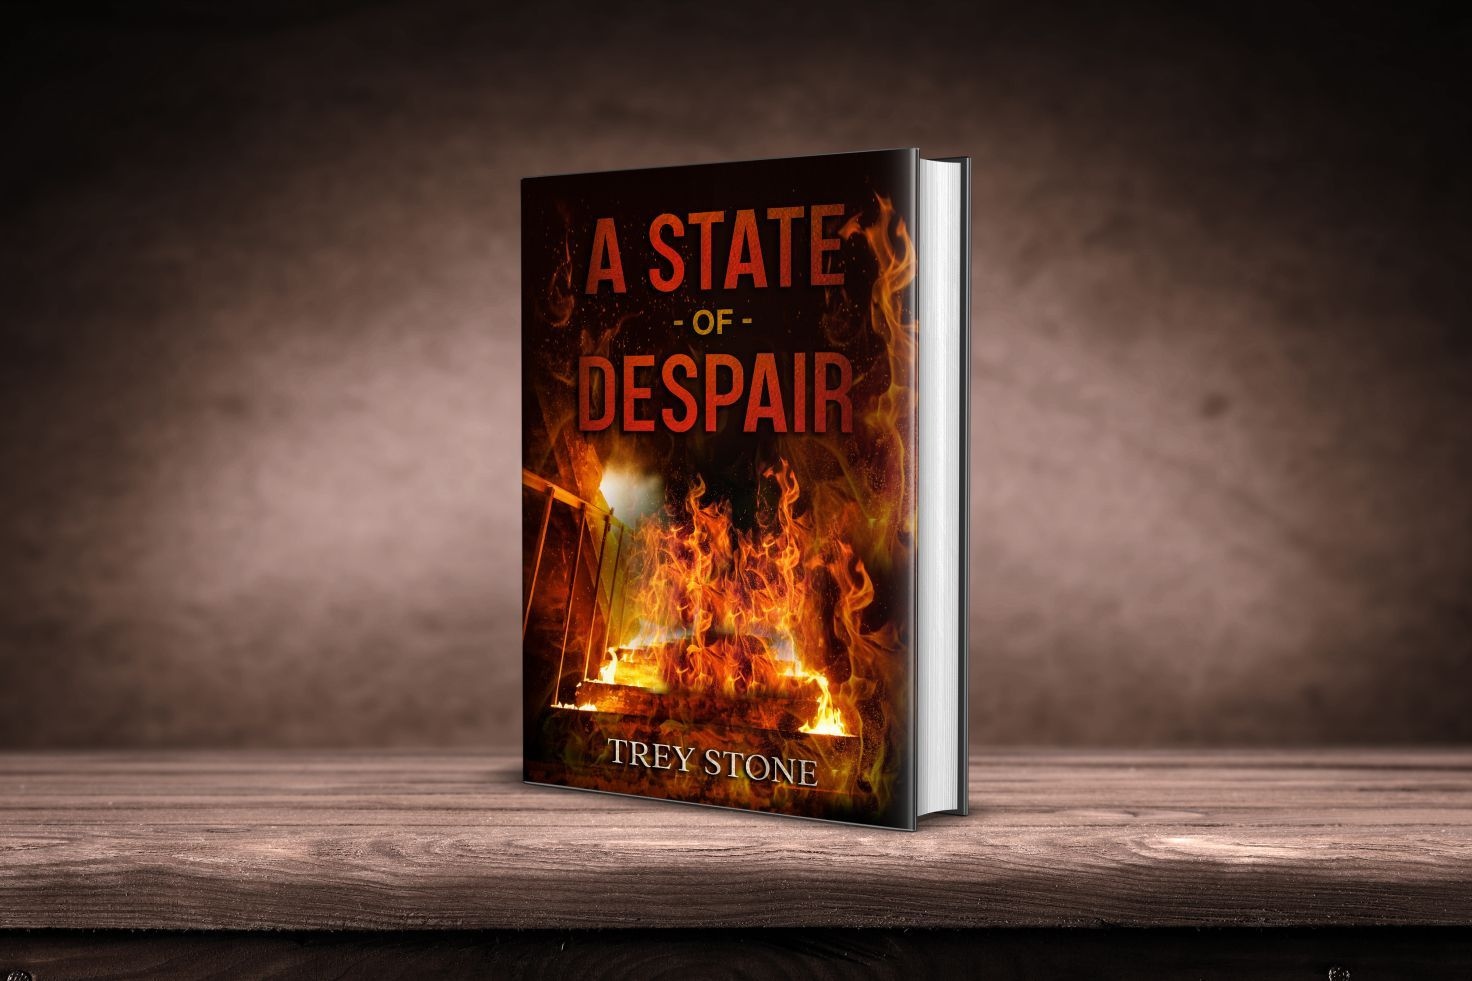 A State of Despair by Trey Stone